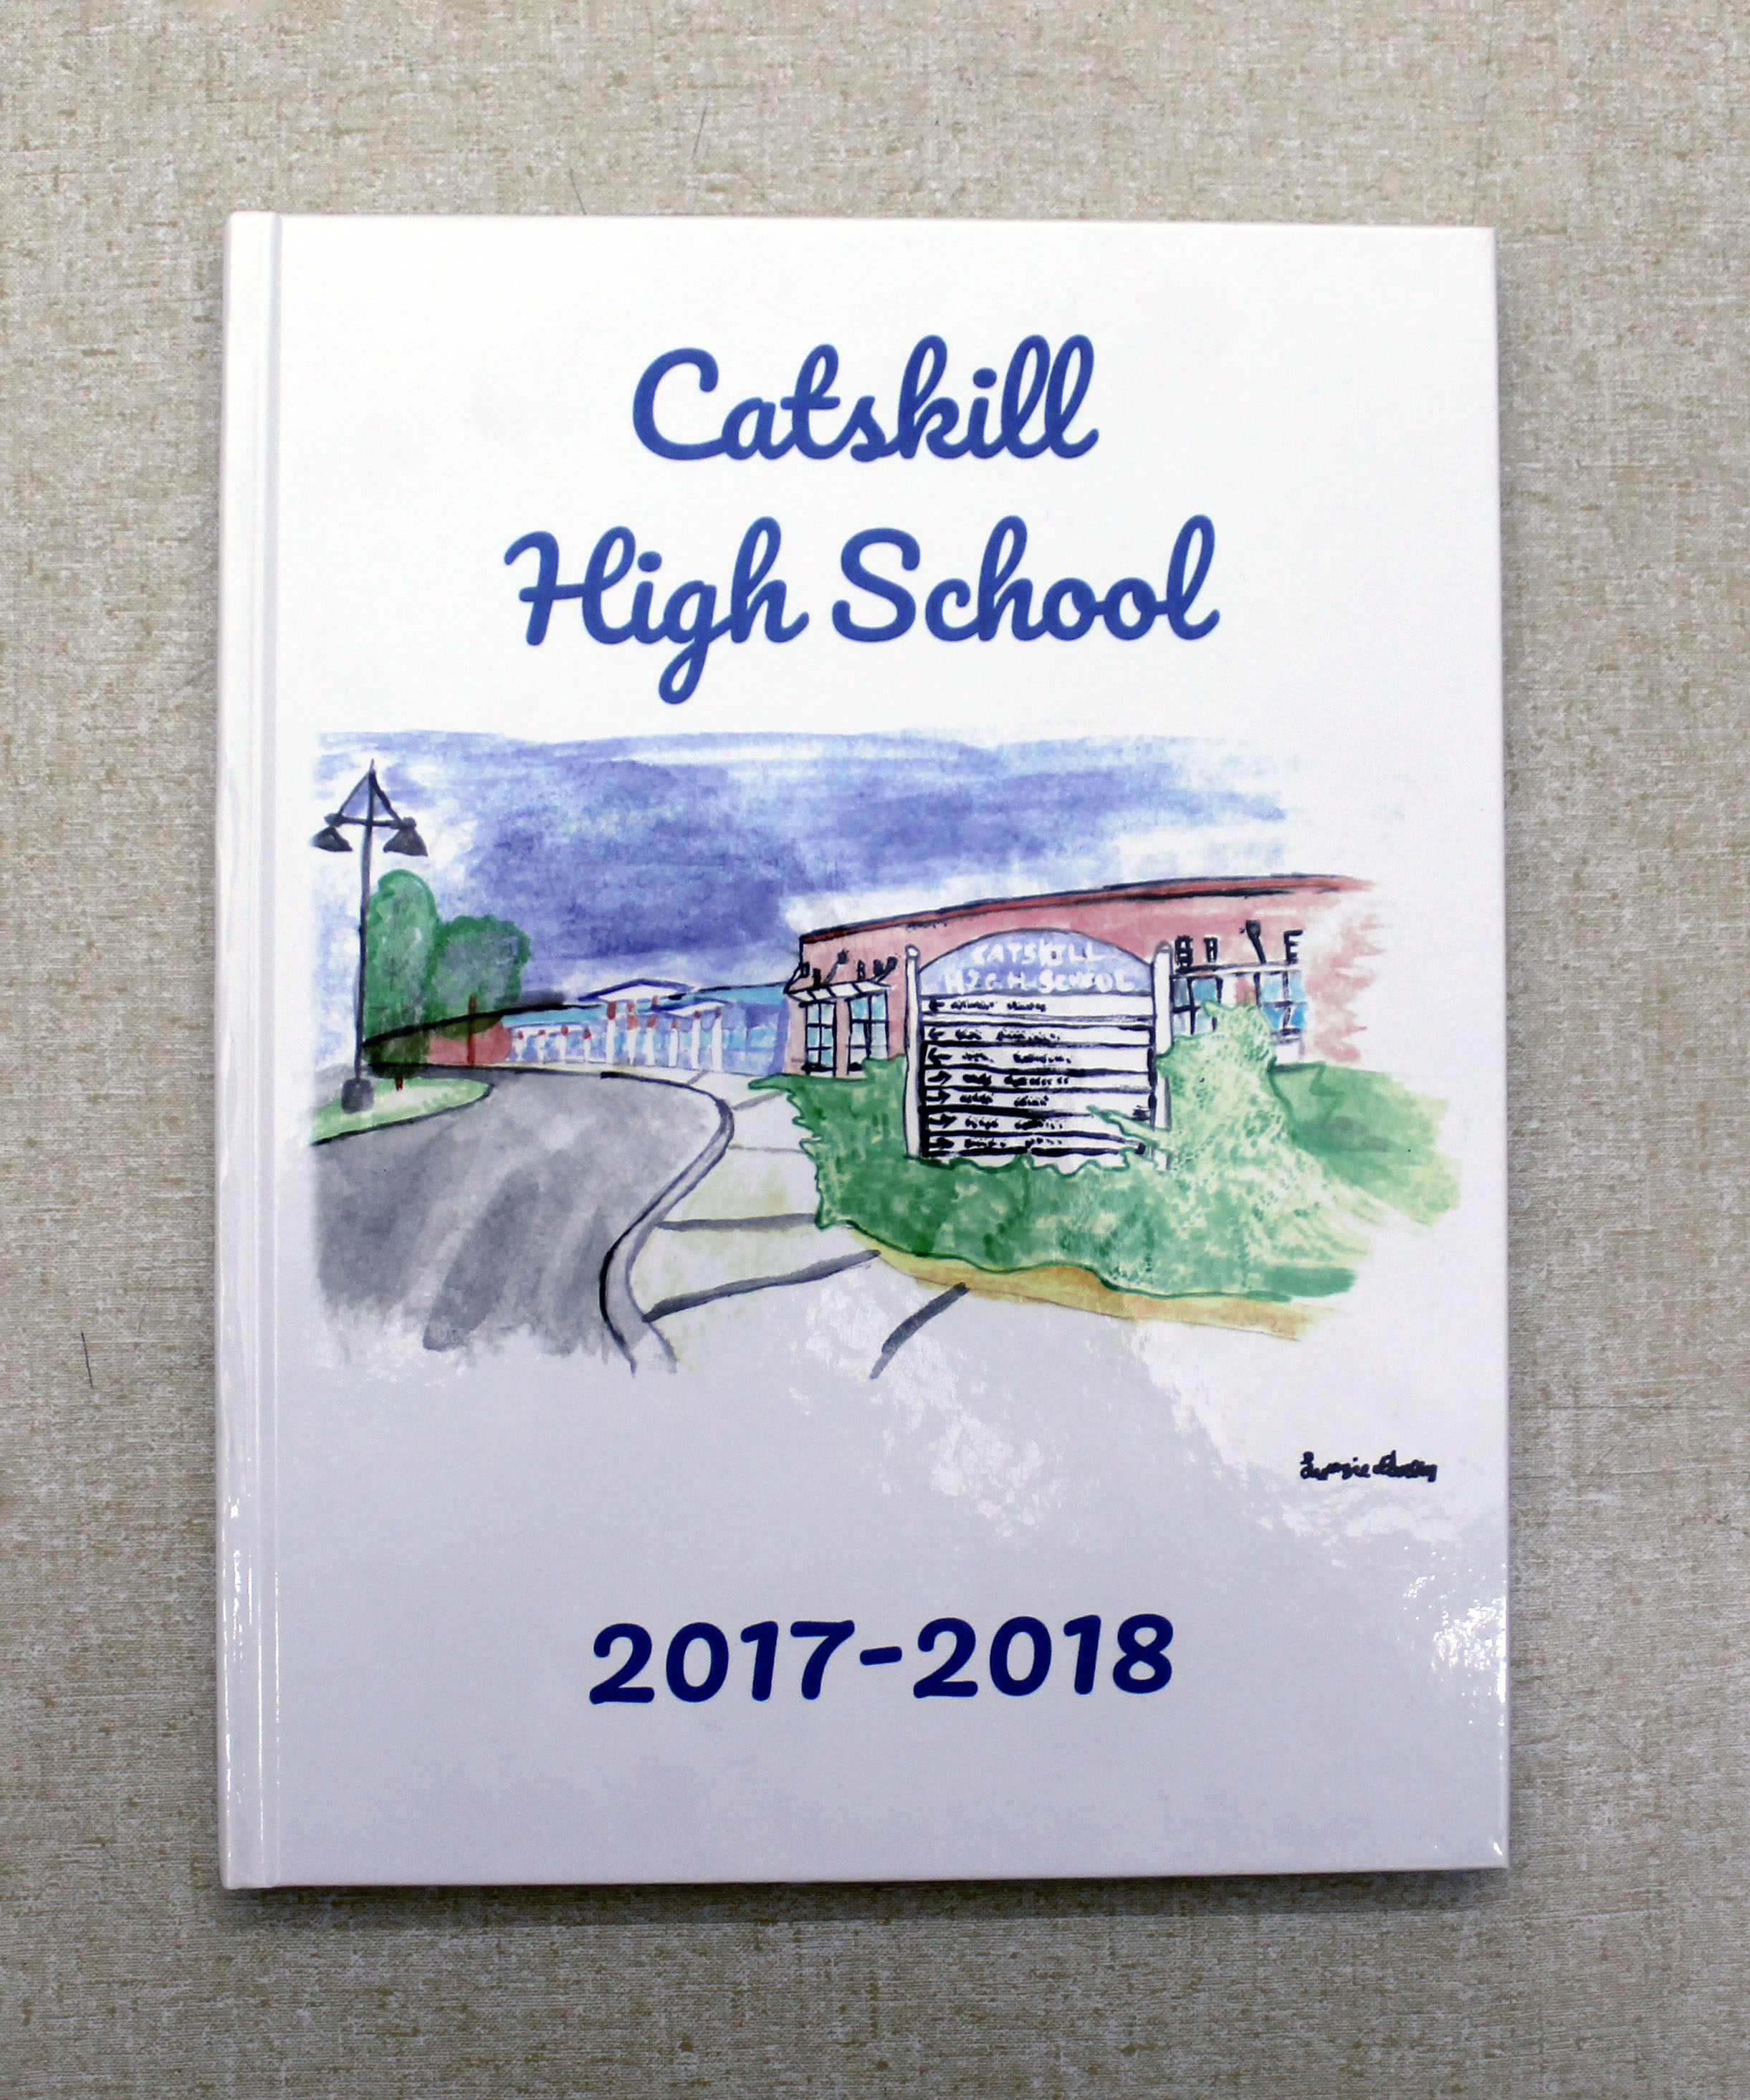 2017-18 Yearbook